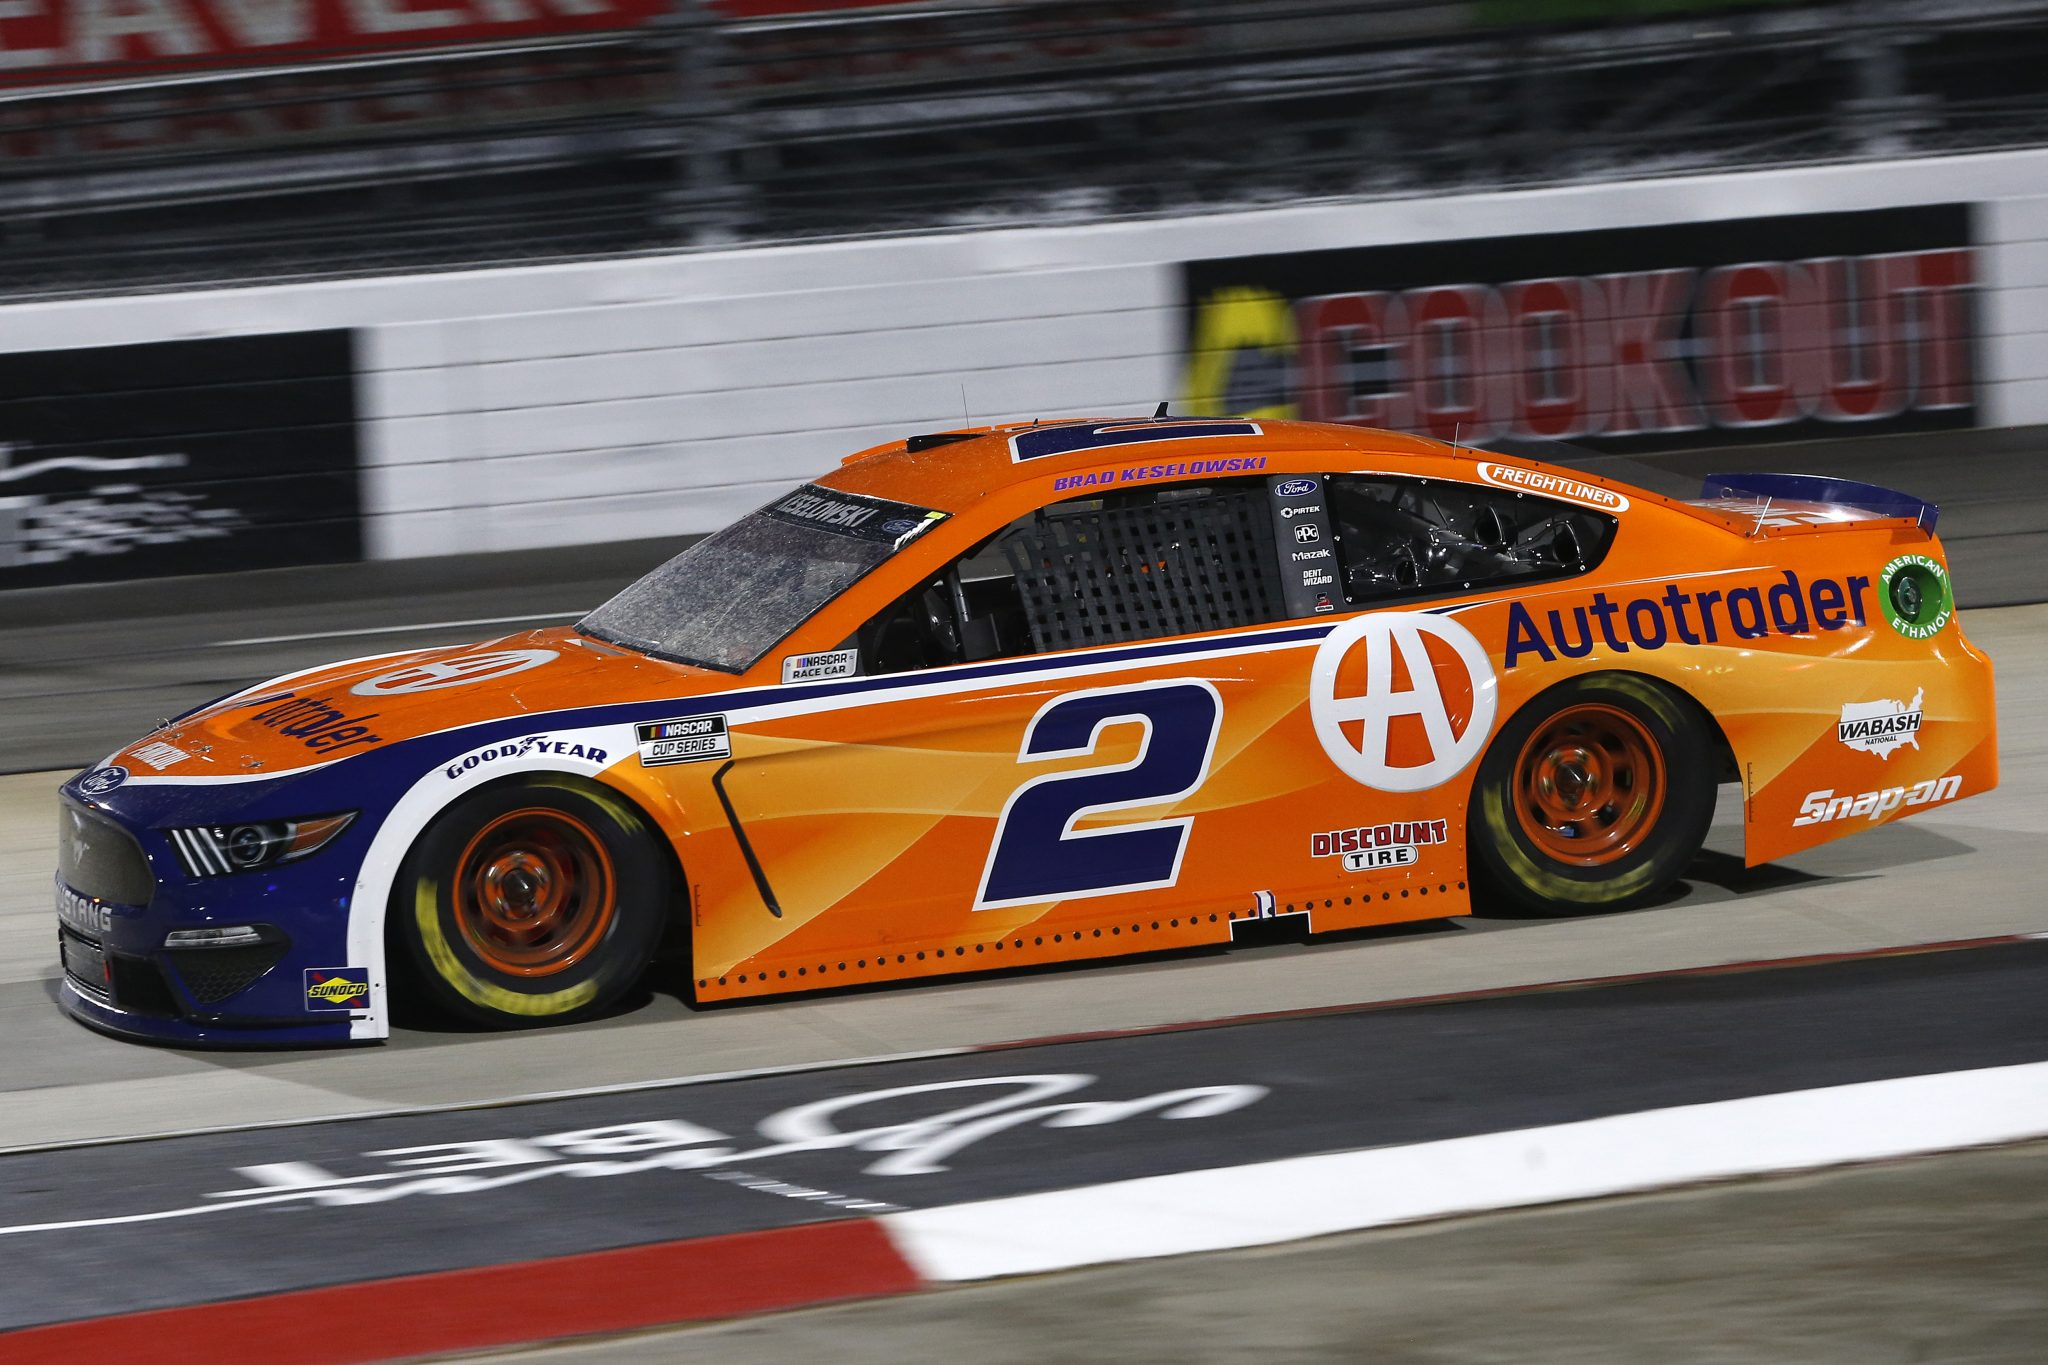 MARTINSVILLE, VIRGINIA - APRIL 10: Brad Keselowski, driver of the #2 Autotrader Ford, drives during the NASCAR Cup Series Blue-Emu Maximum Pain Relief 500 at Martinsville Speedway on April 10, 2021 in Martinsville, Virginia. (Photo by Brian Lawdermilk/Getty Images) | Getty Images